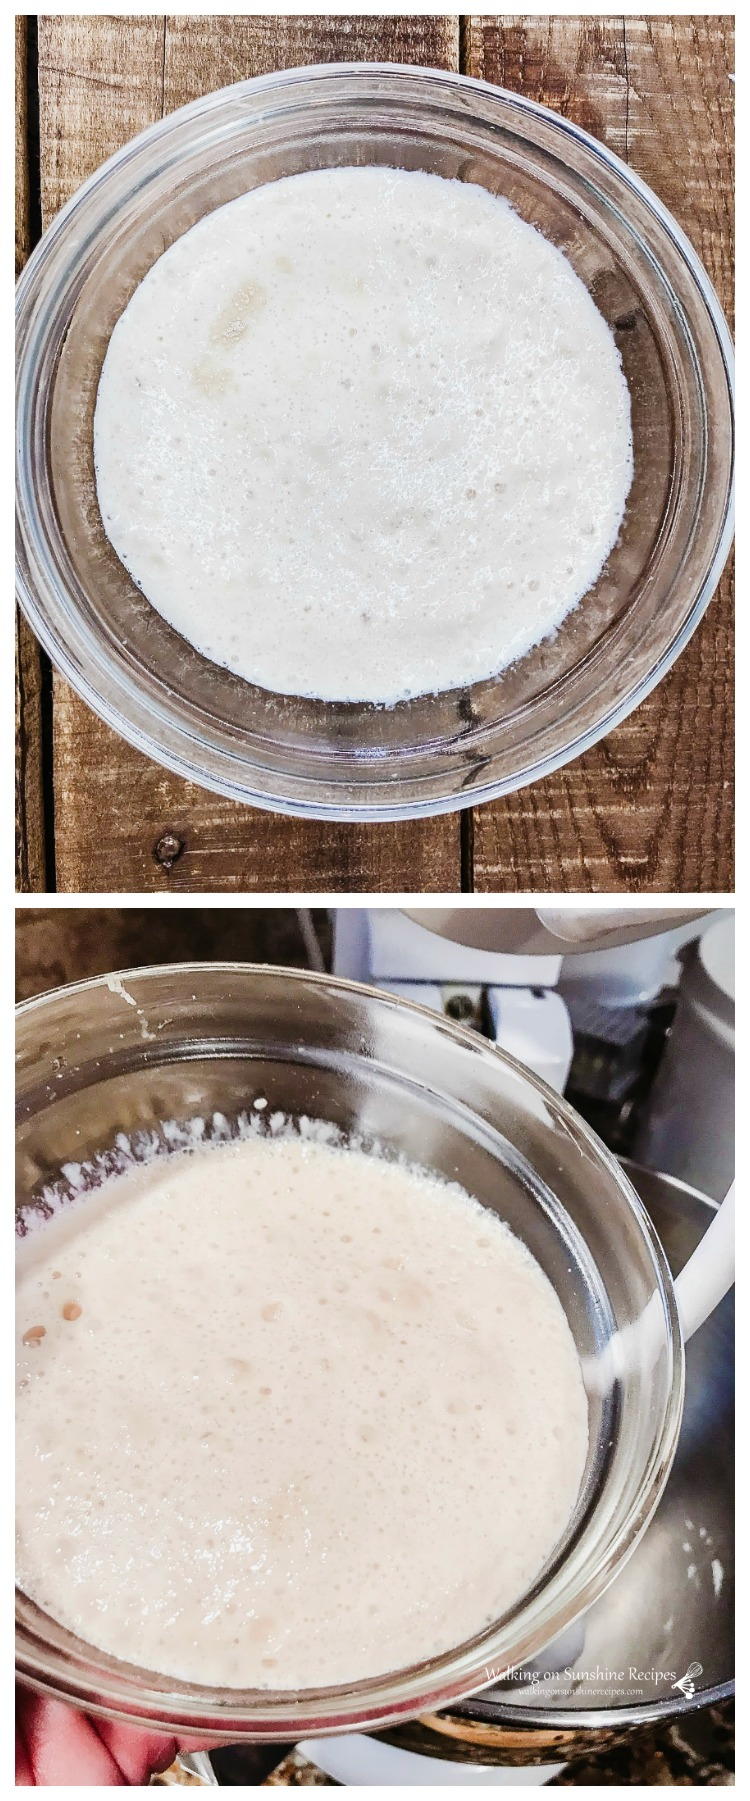 Proofed yeast for Homemade Cinnamon Rolls